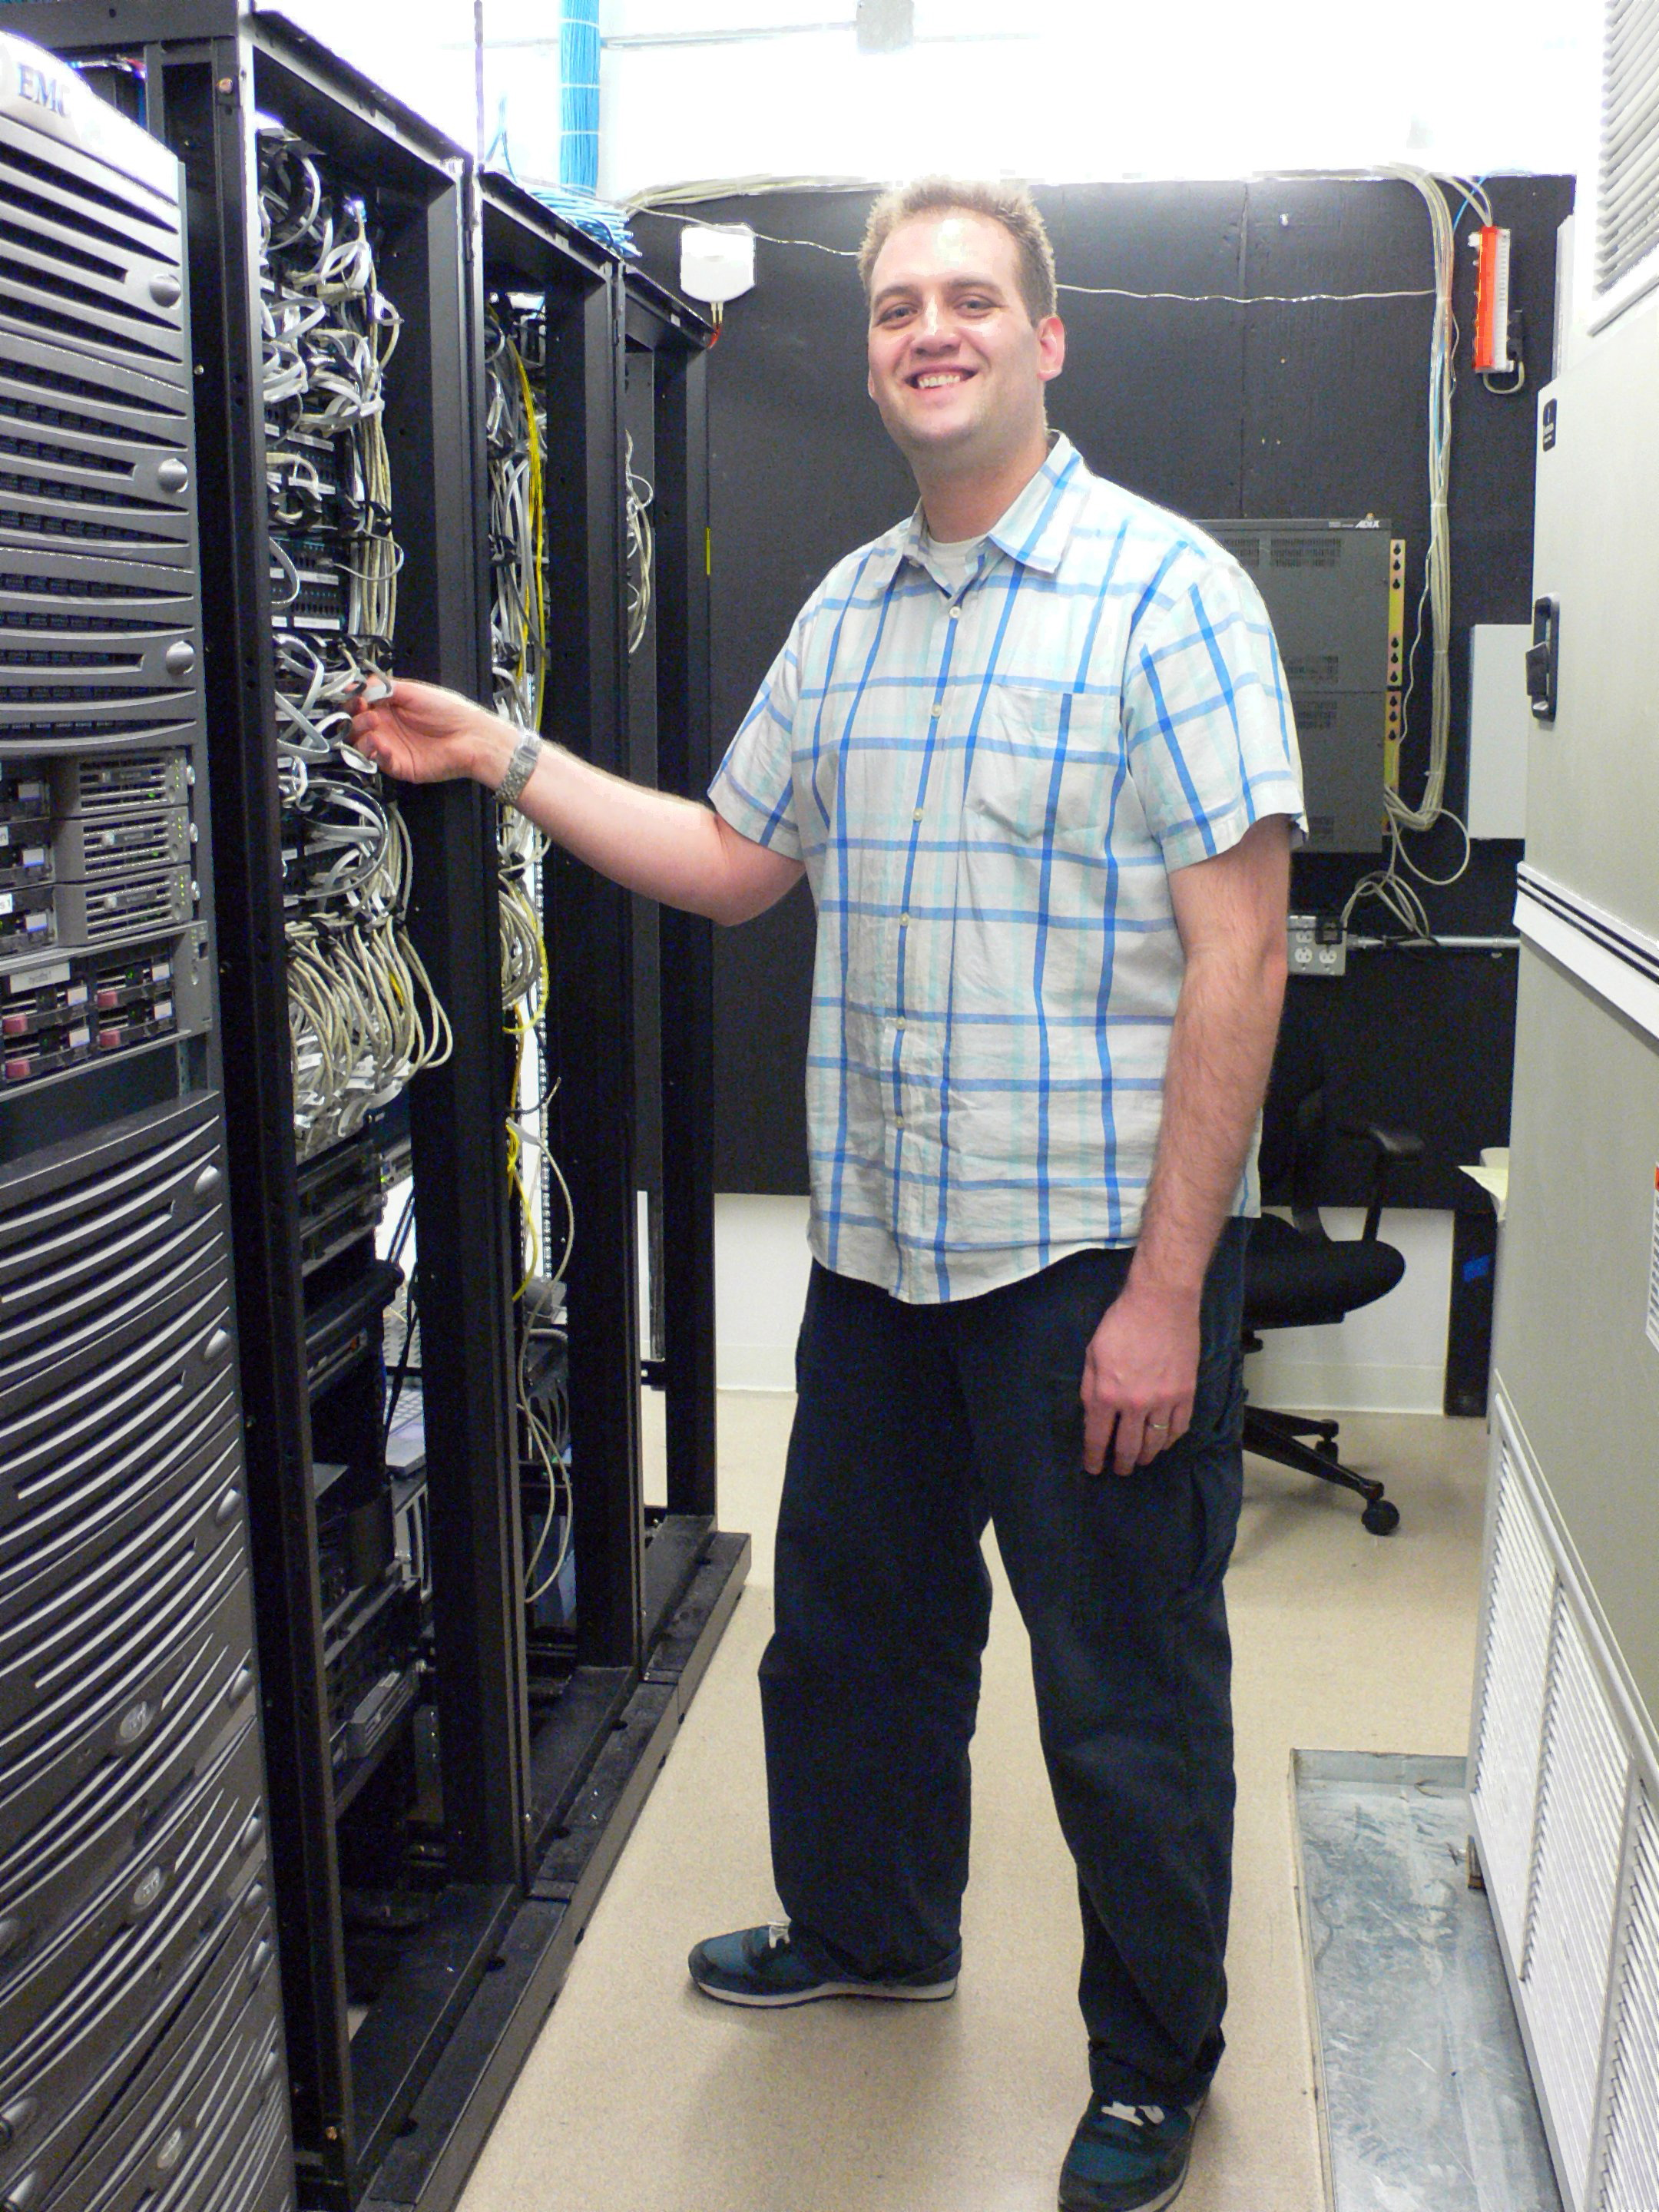 system administrator   wikipedia  the   encyclopediaprofessional system administrator jpg